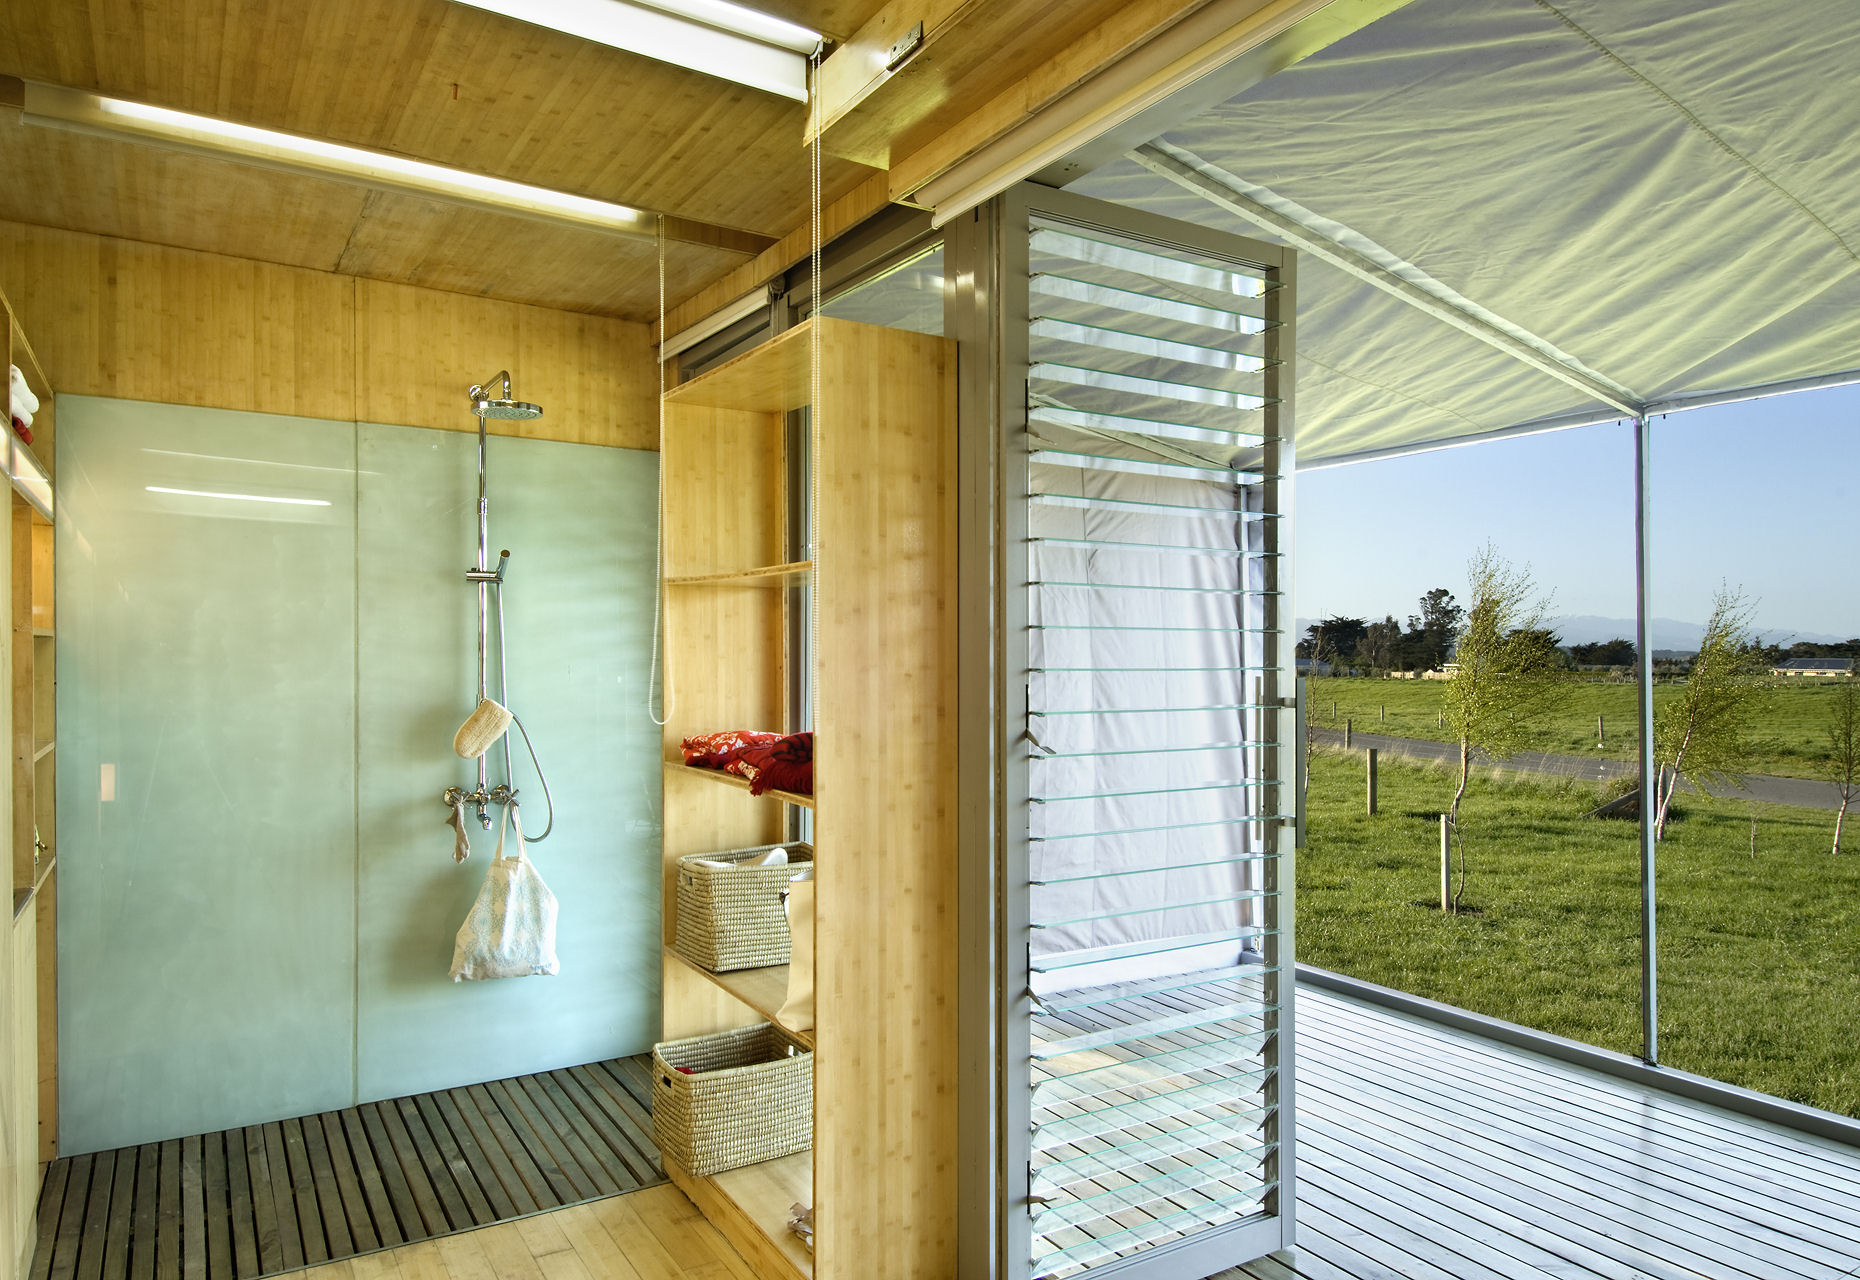 Port-a-Bach Features Stylish Home Design in a Portable Container